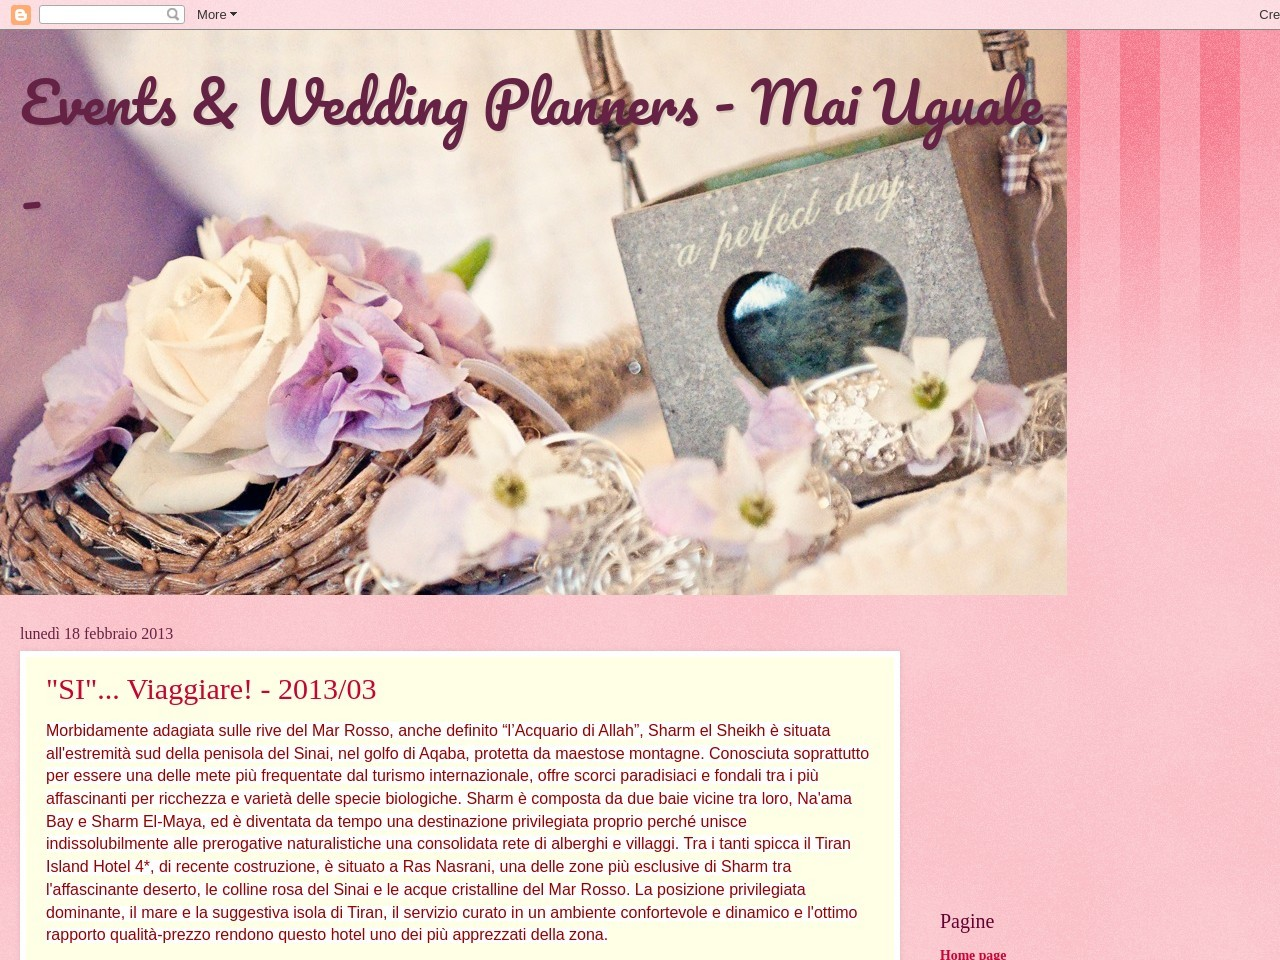 events-wedding-planners